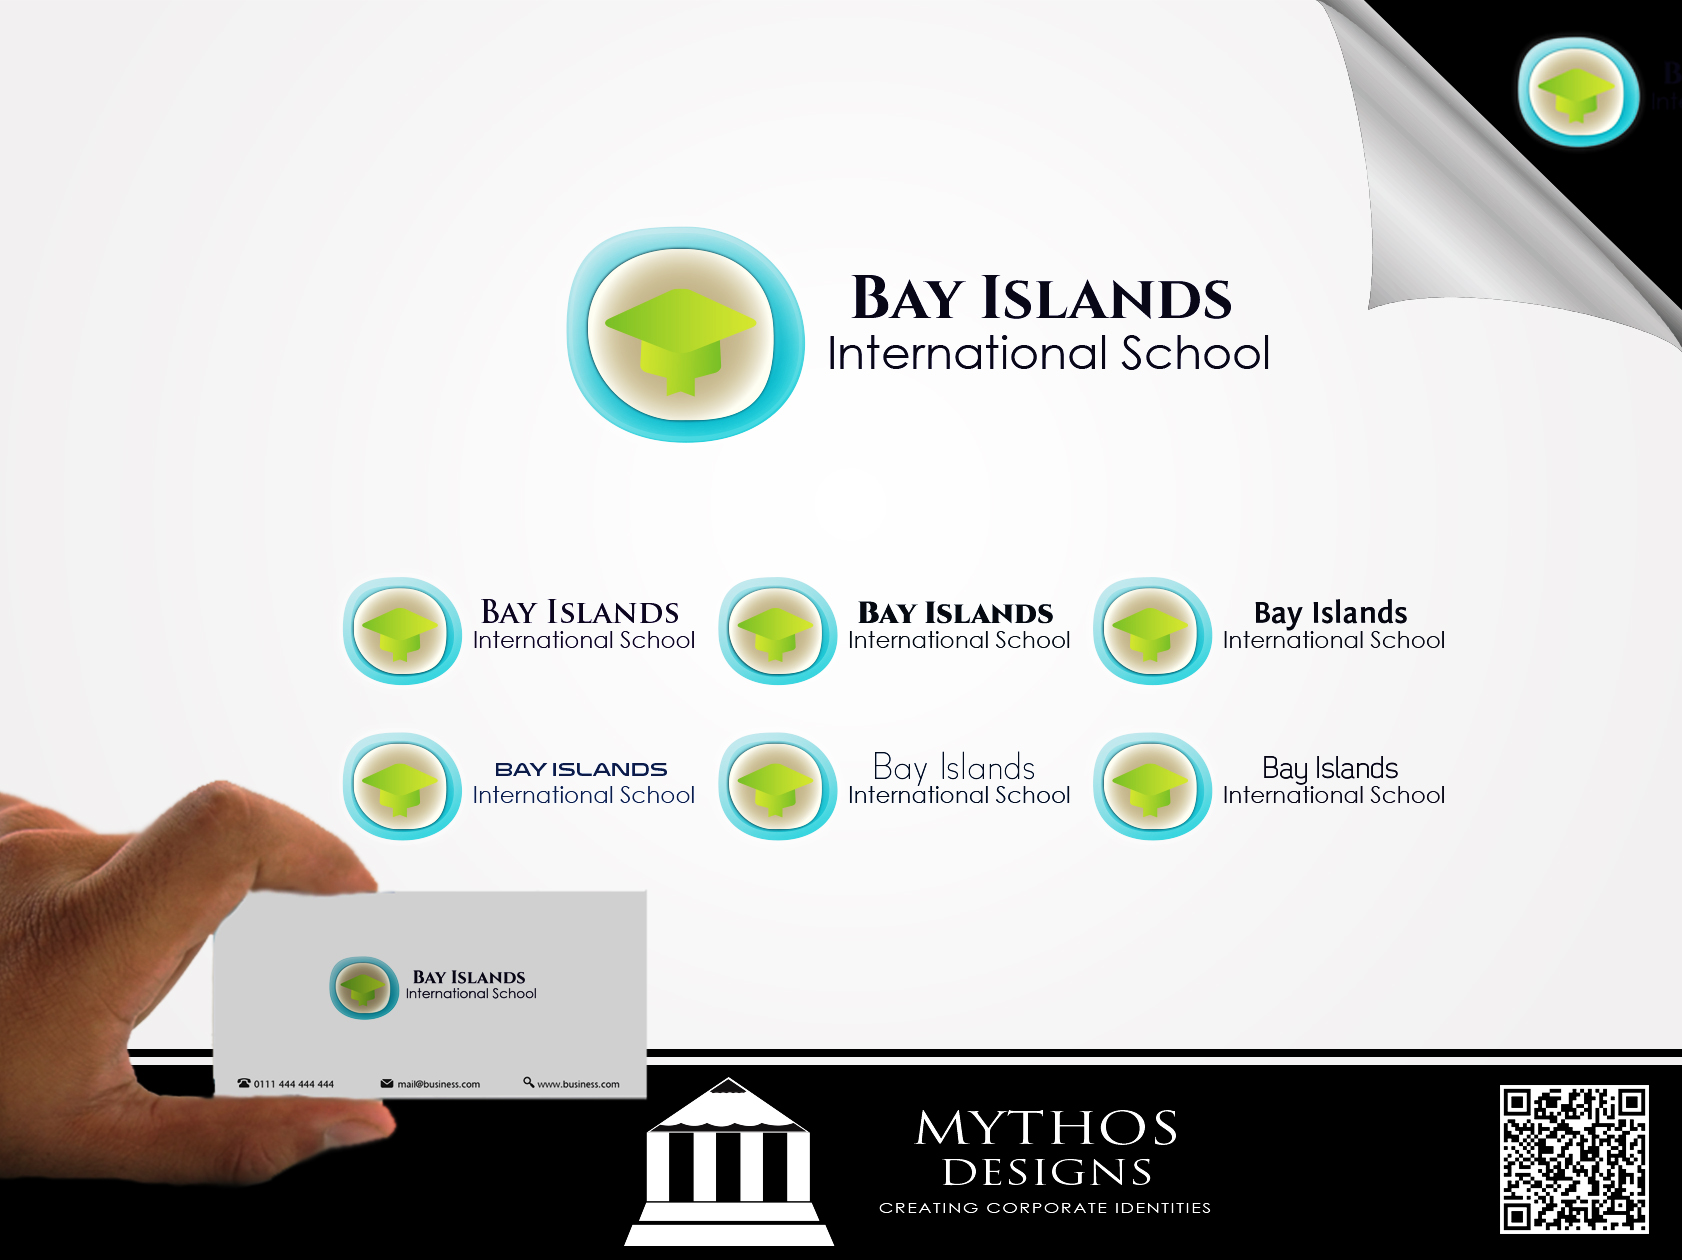 Logo Design by Mythos Designs - Entry No. 21 in the Logo Design Contest Creative Logo Design for Bay Islands International School.